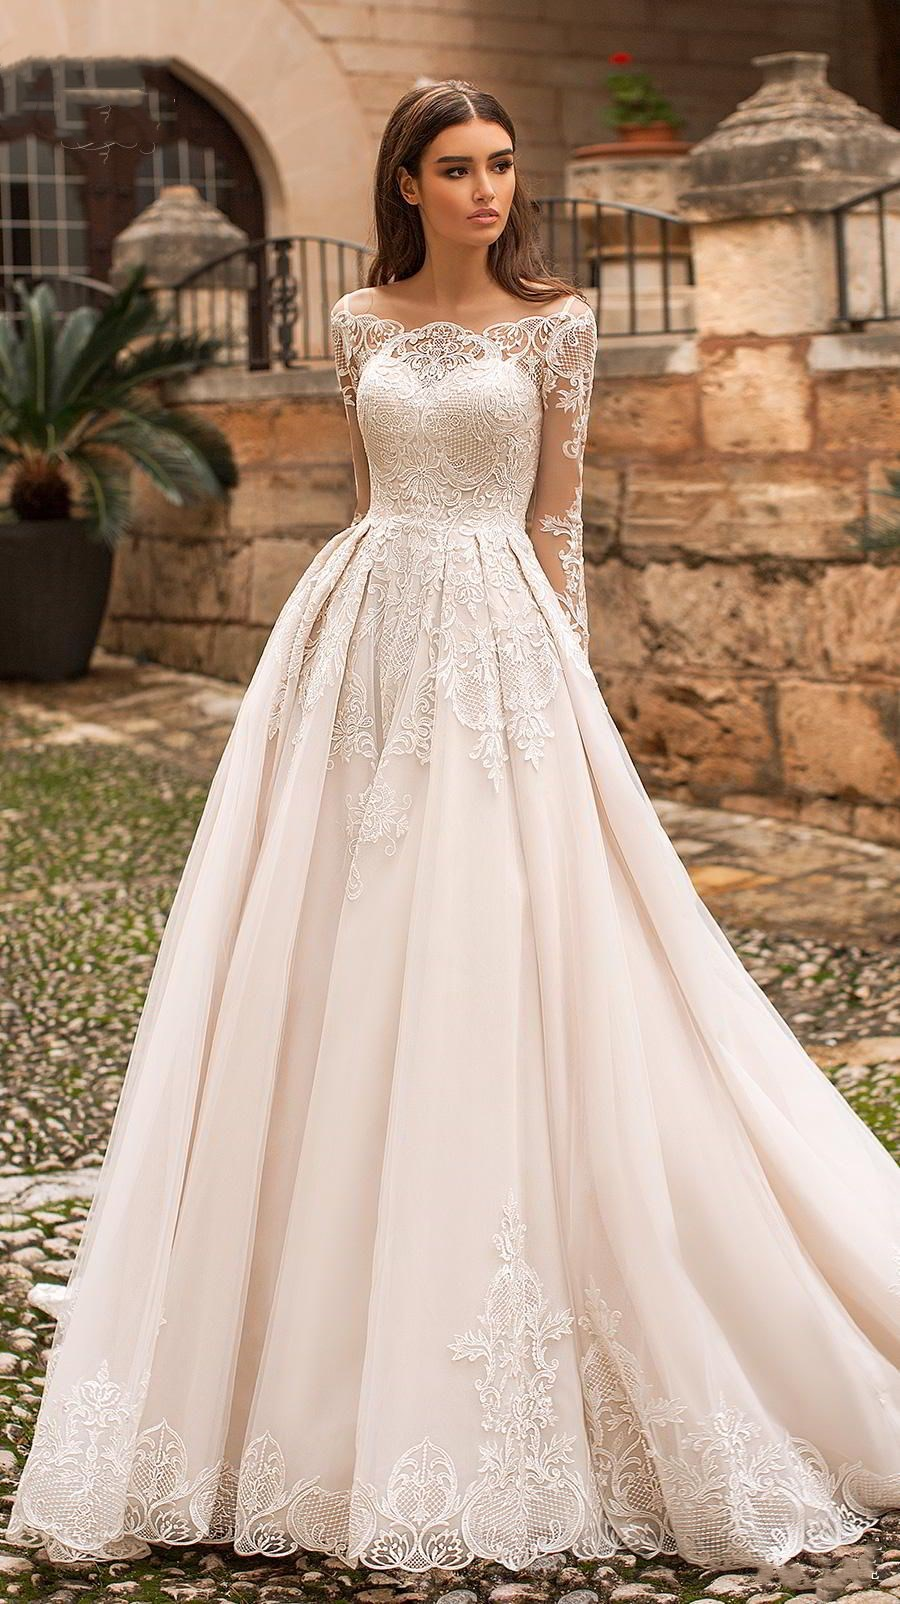 ad83fc060c6 White Tulle Long Sleeves Wedding Dress With Appliques